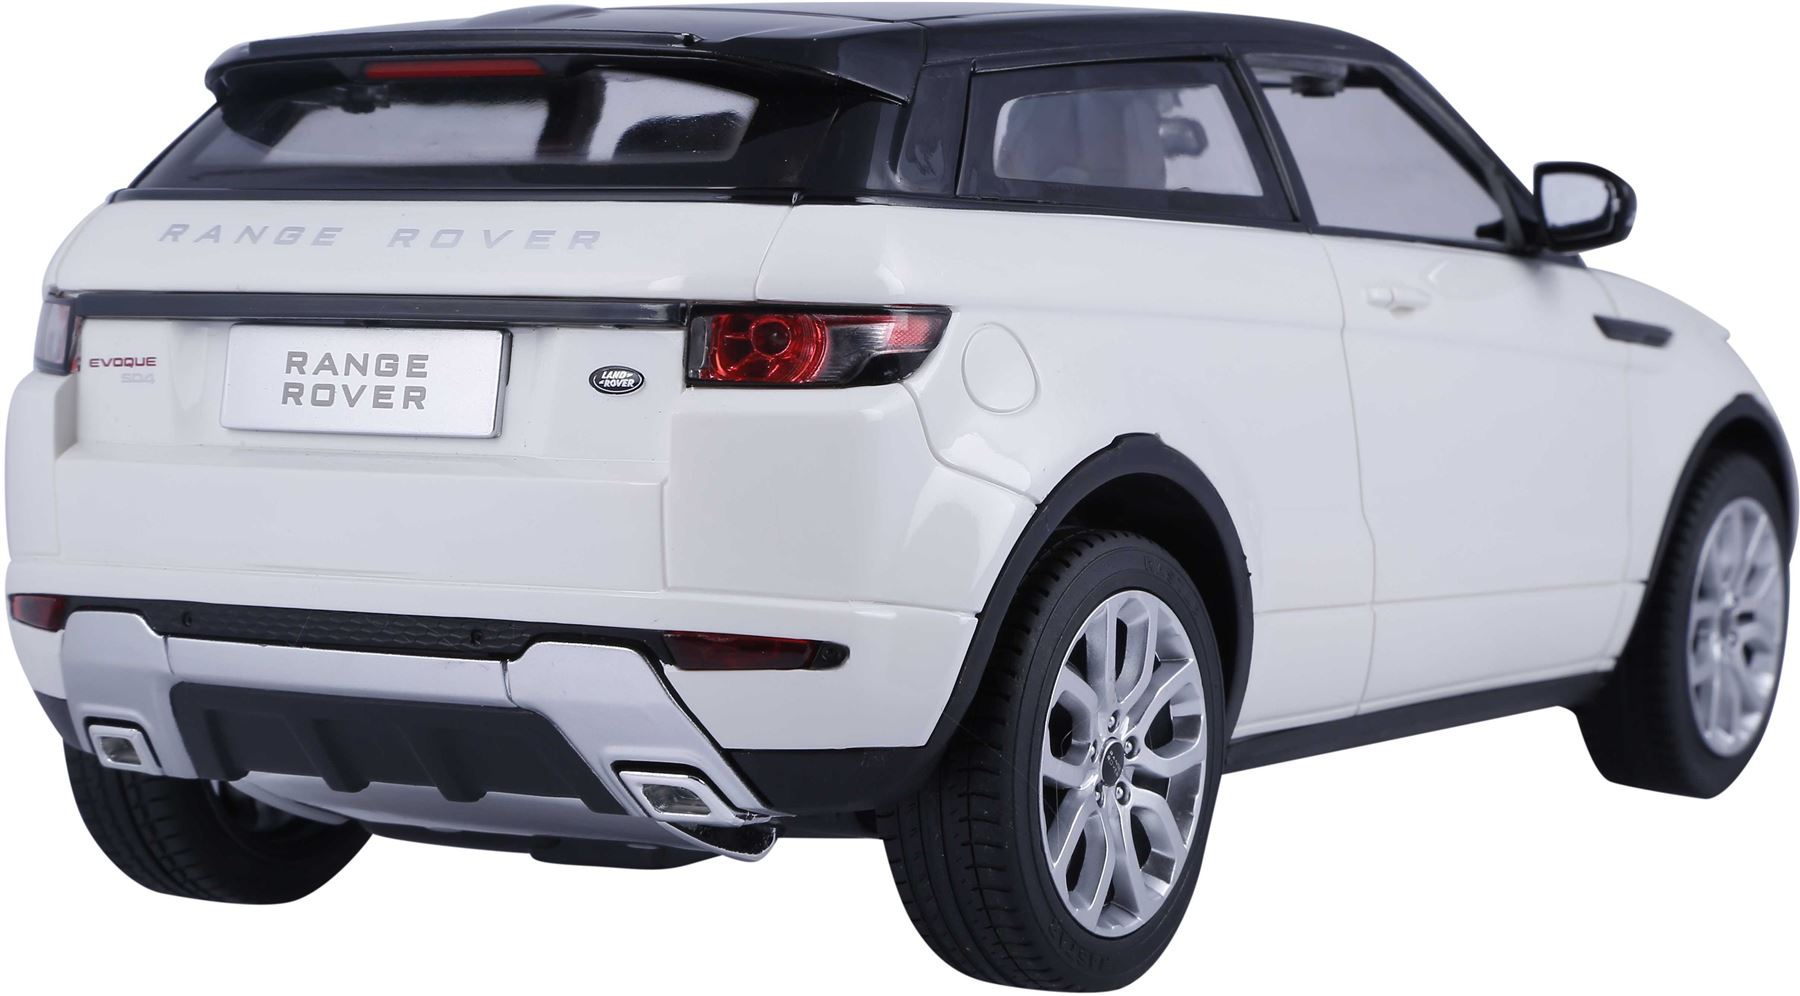 Official Licensed Rc Range Rover Evoque Car Remote Control 1 14 Scale Red White Ebay